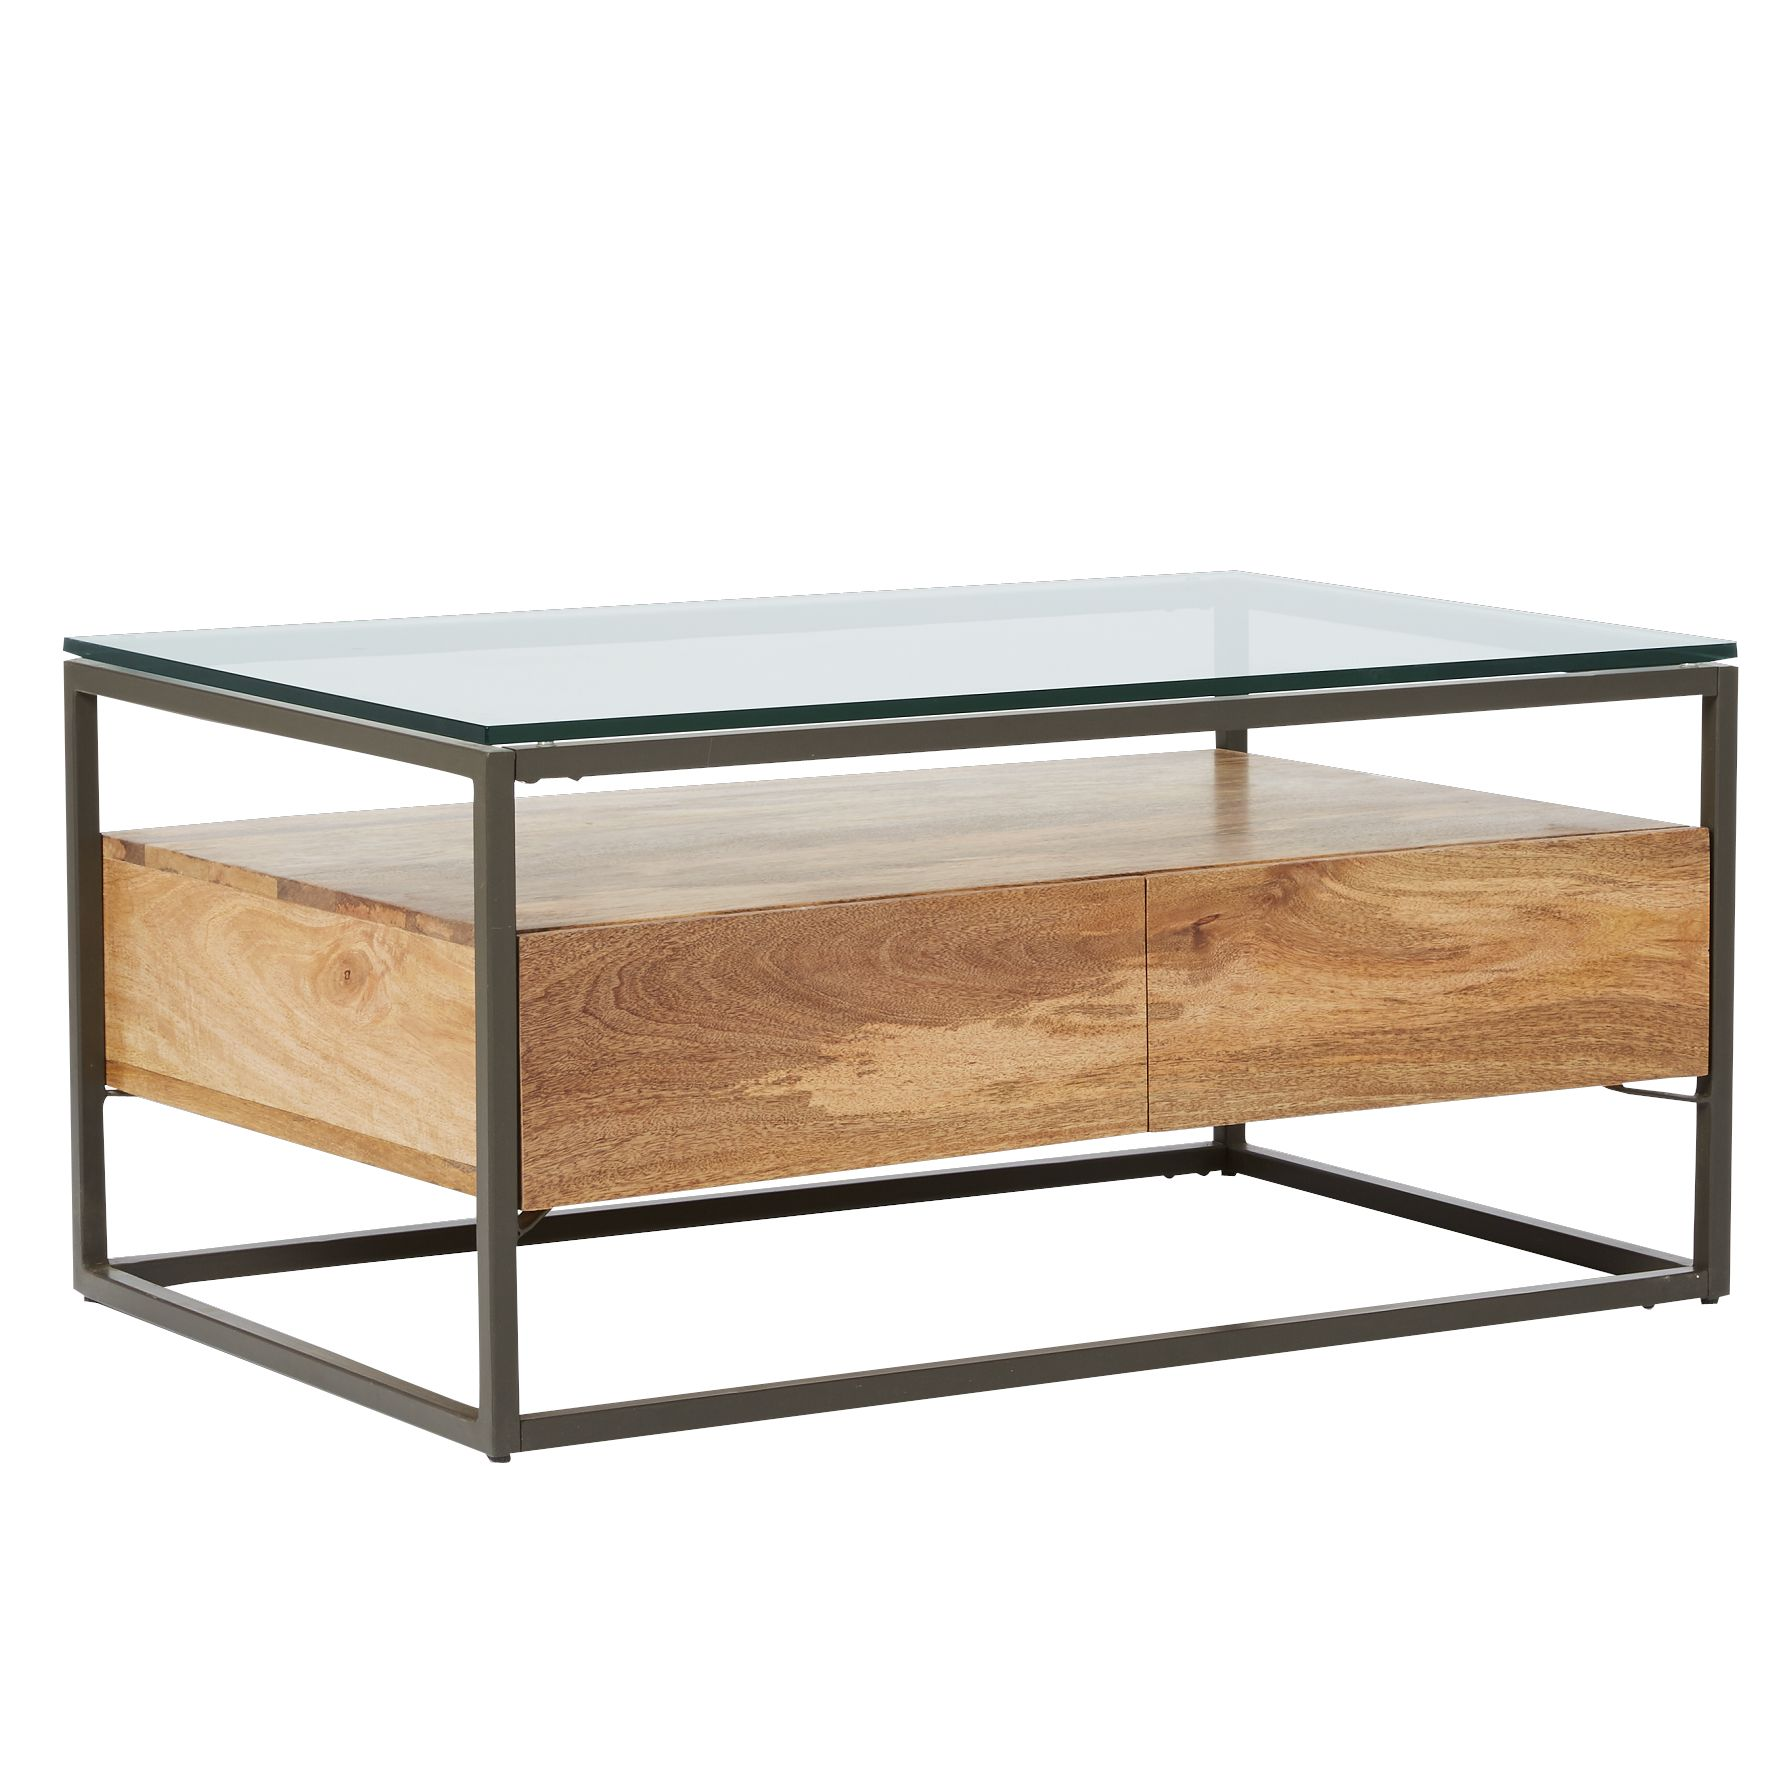 Picture of: West Elm Industrial Storage Box Frame Coffee Table At John Lewis Partners